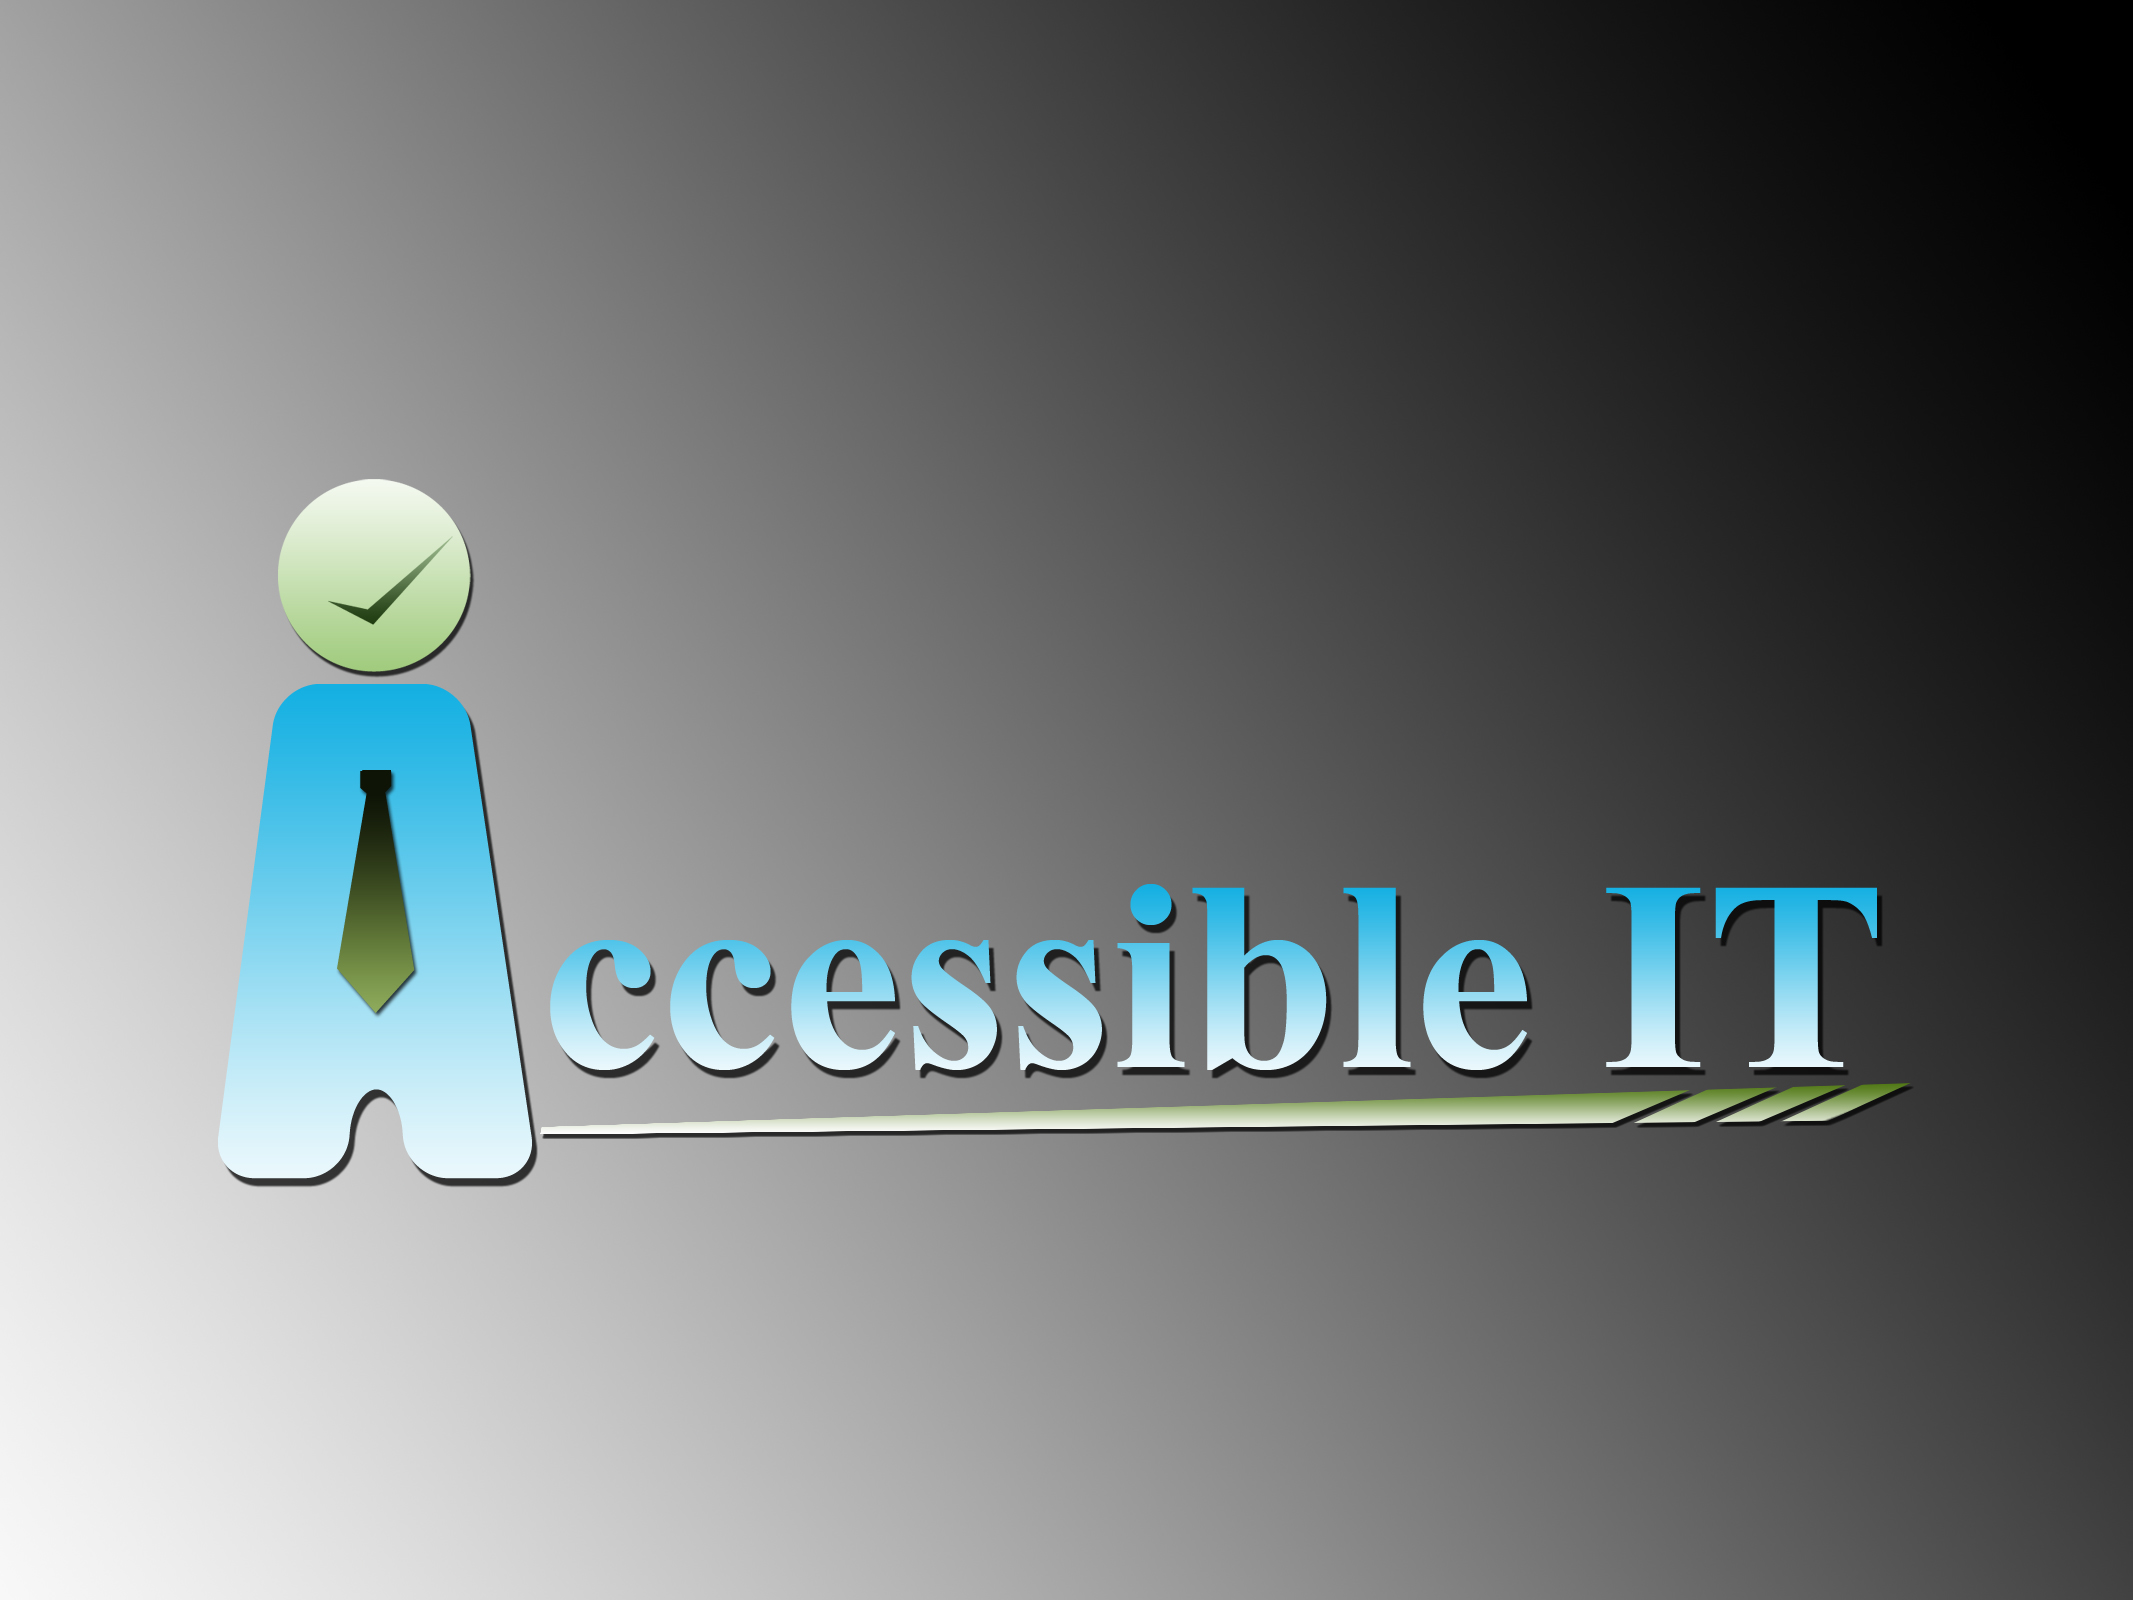 Logo Design by Jerry Nable Jr - Entry No. 251 in the Logo Design Contest Logo Design Needed for Exciting New Company Accessible IT.